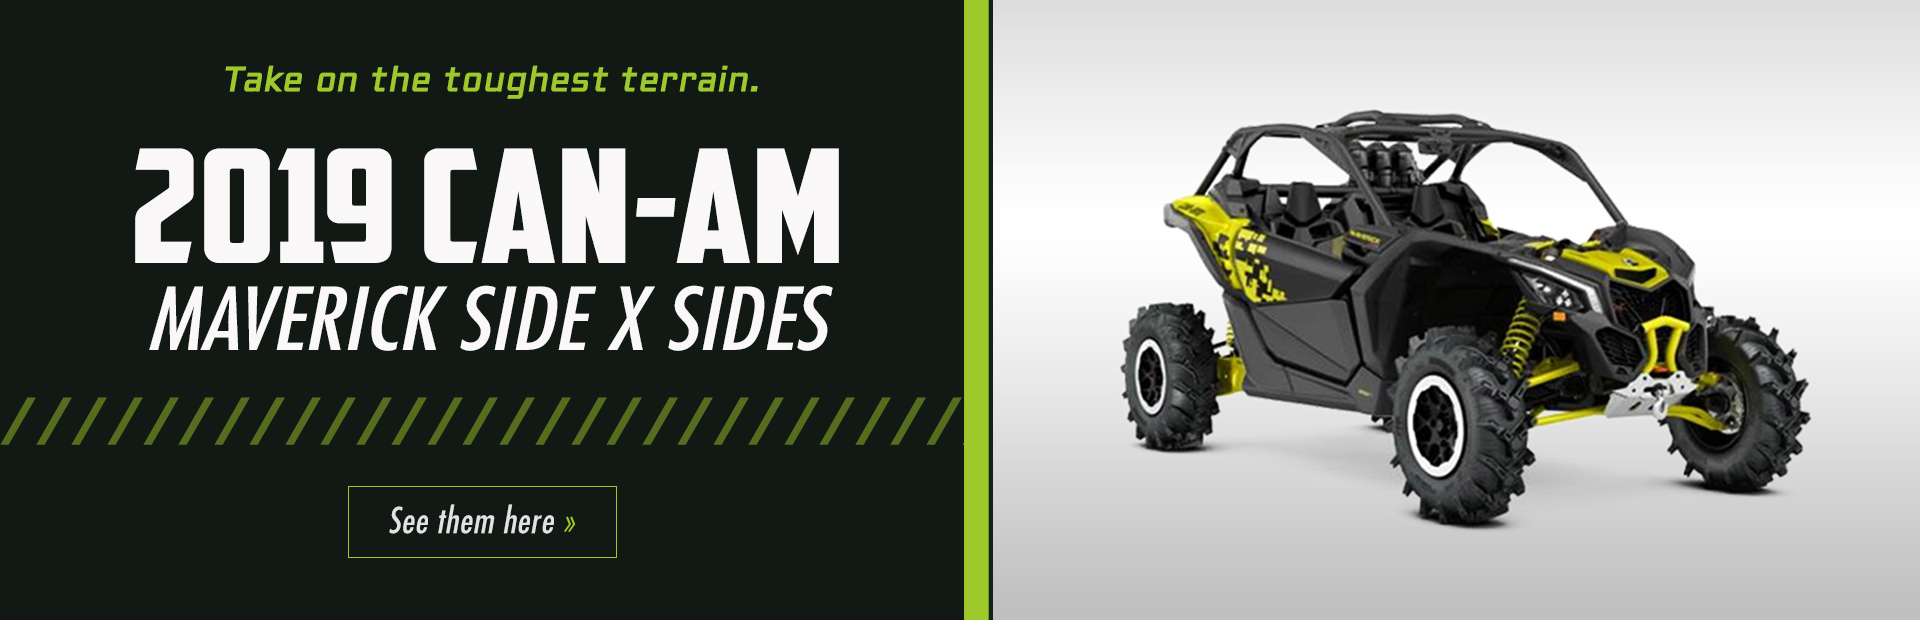 2019 Can-Am Maverick Side x Sides: Click here to view the models.